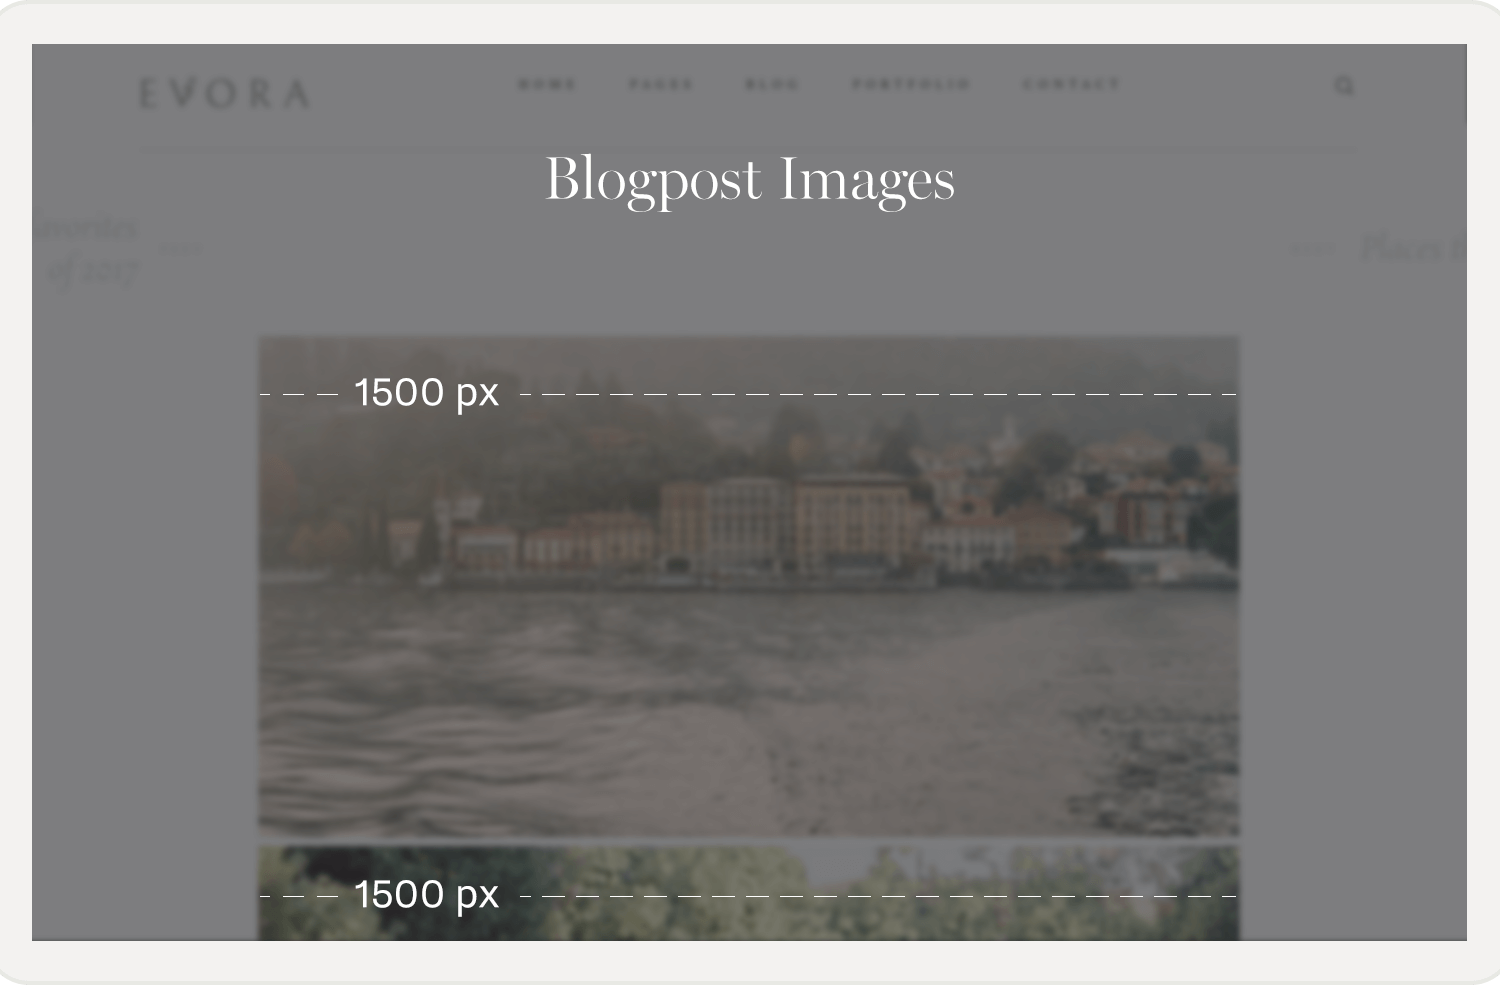 blog post image sizes